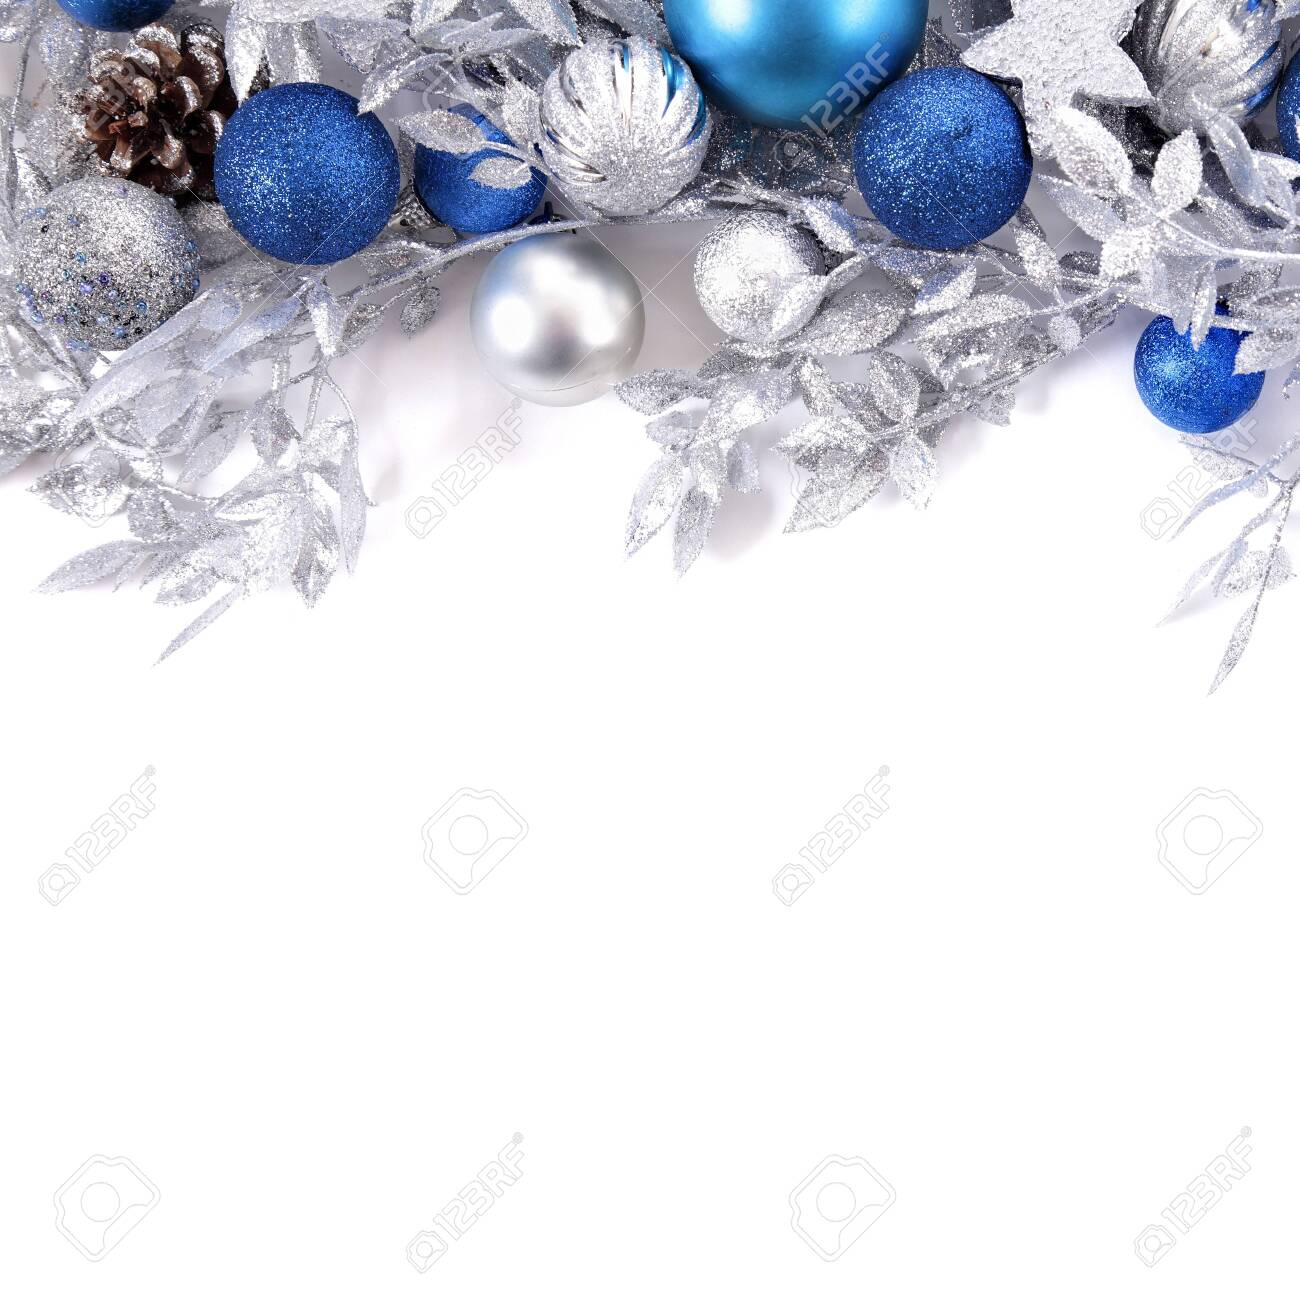 Christmas border with blue and silver decorations square - 121005574